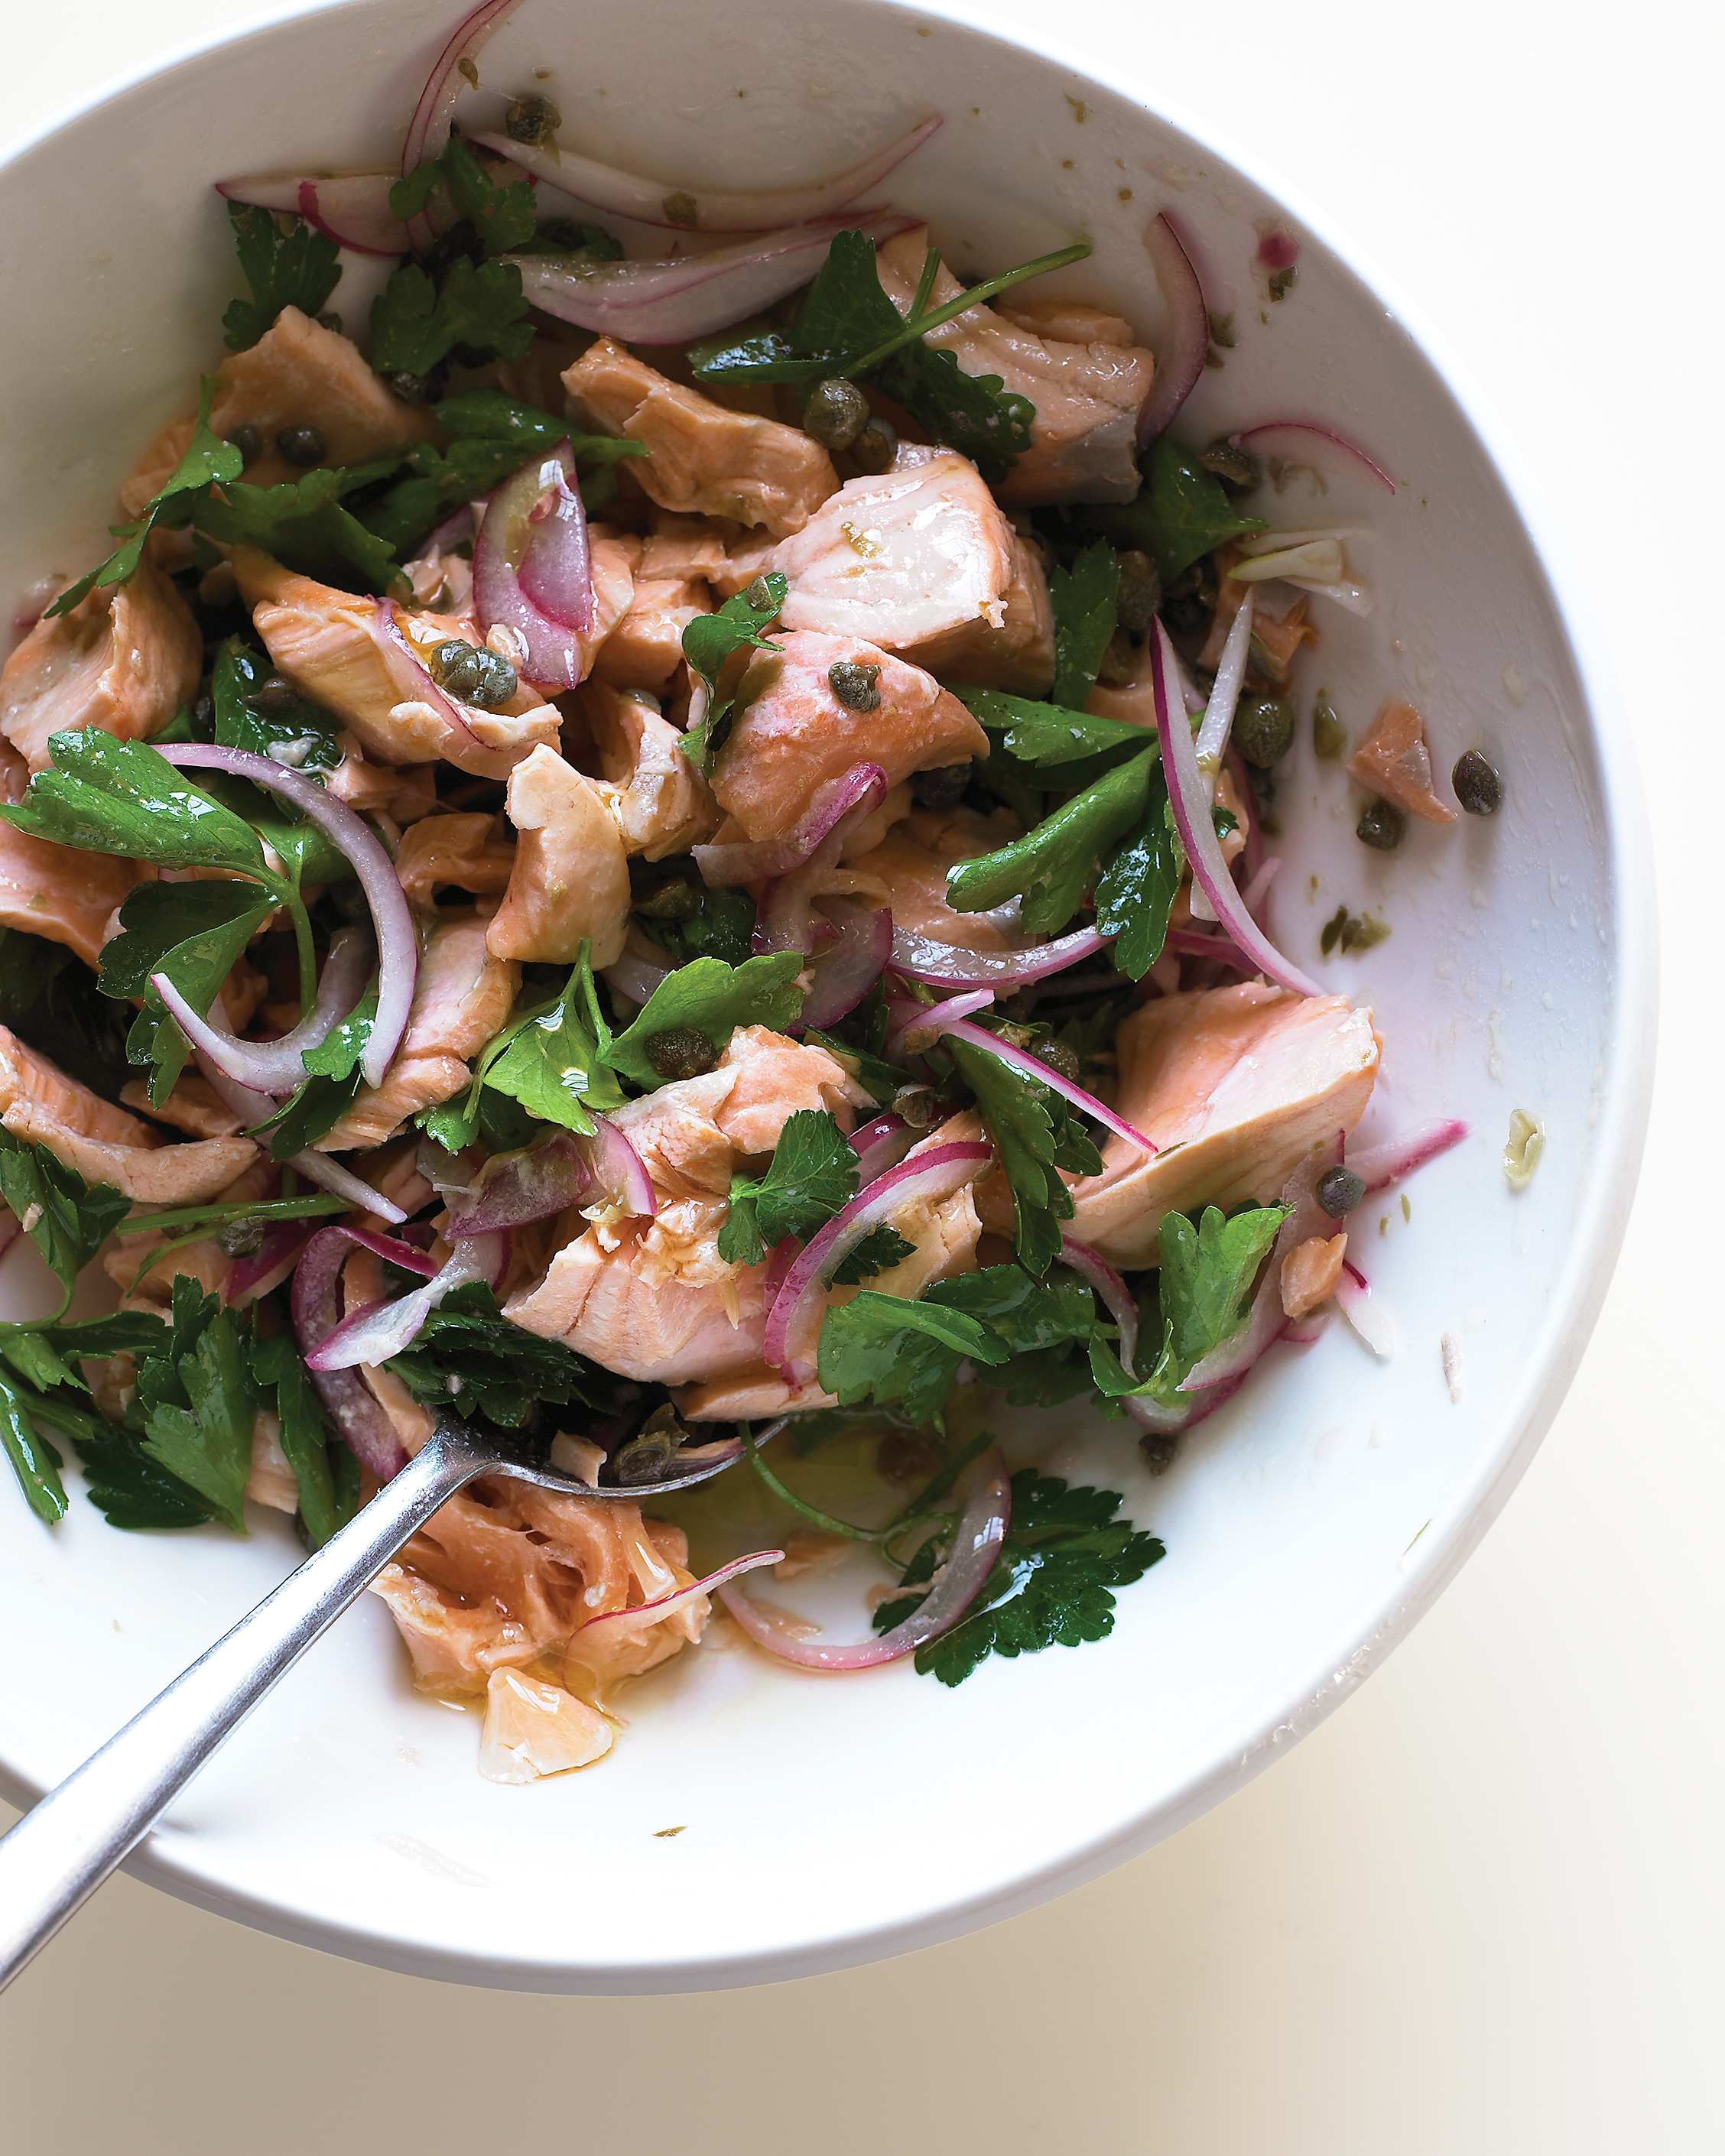 Salmon Salad with Parsley and Capers